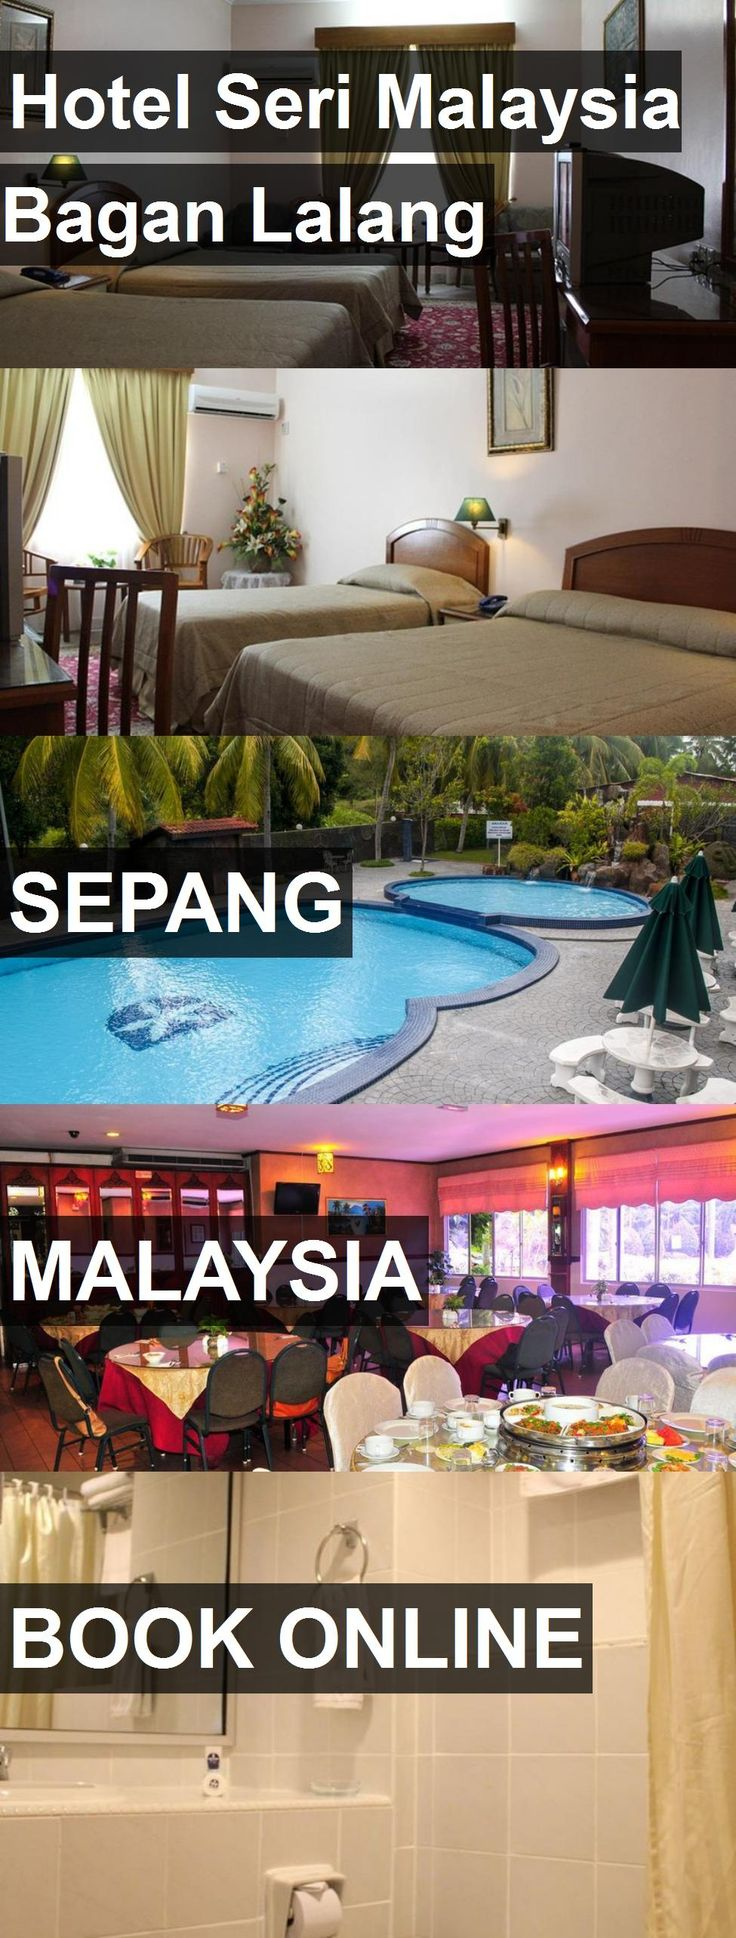 Hotel Seri Malaysia Bagan Lalang in Sepang, Malaysia. For more information, photos, reviews and best prices please follow the link. #Malaysia #Sepang #travel #vacation #hotel